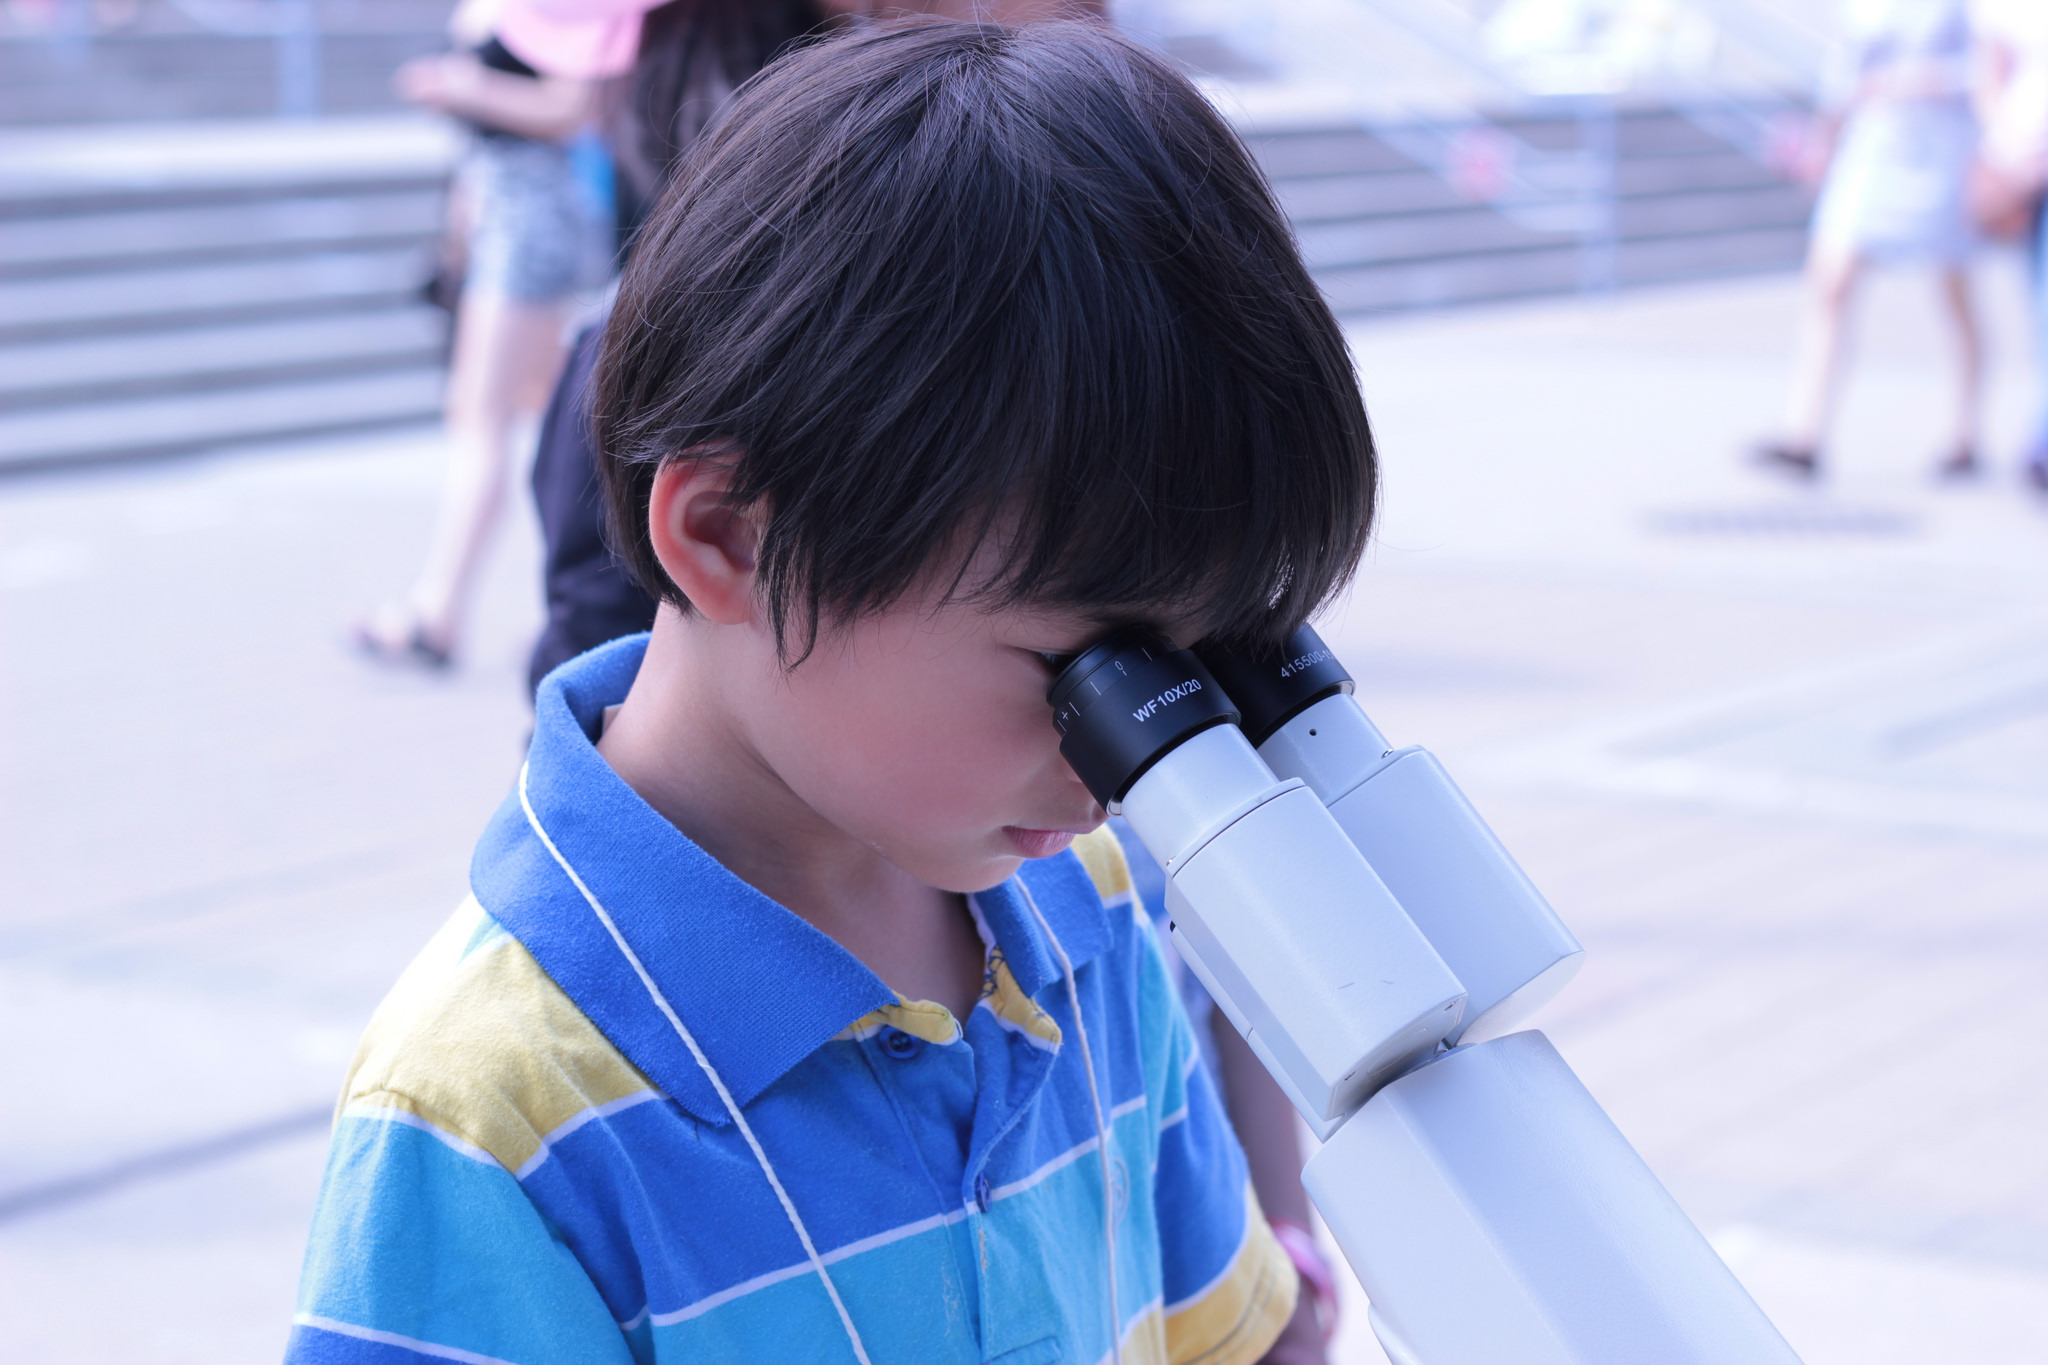 A boy examining fish larvae under a microscope